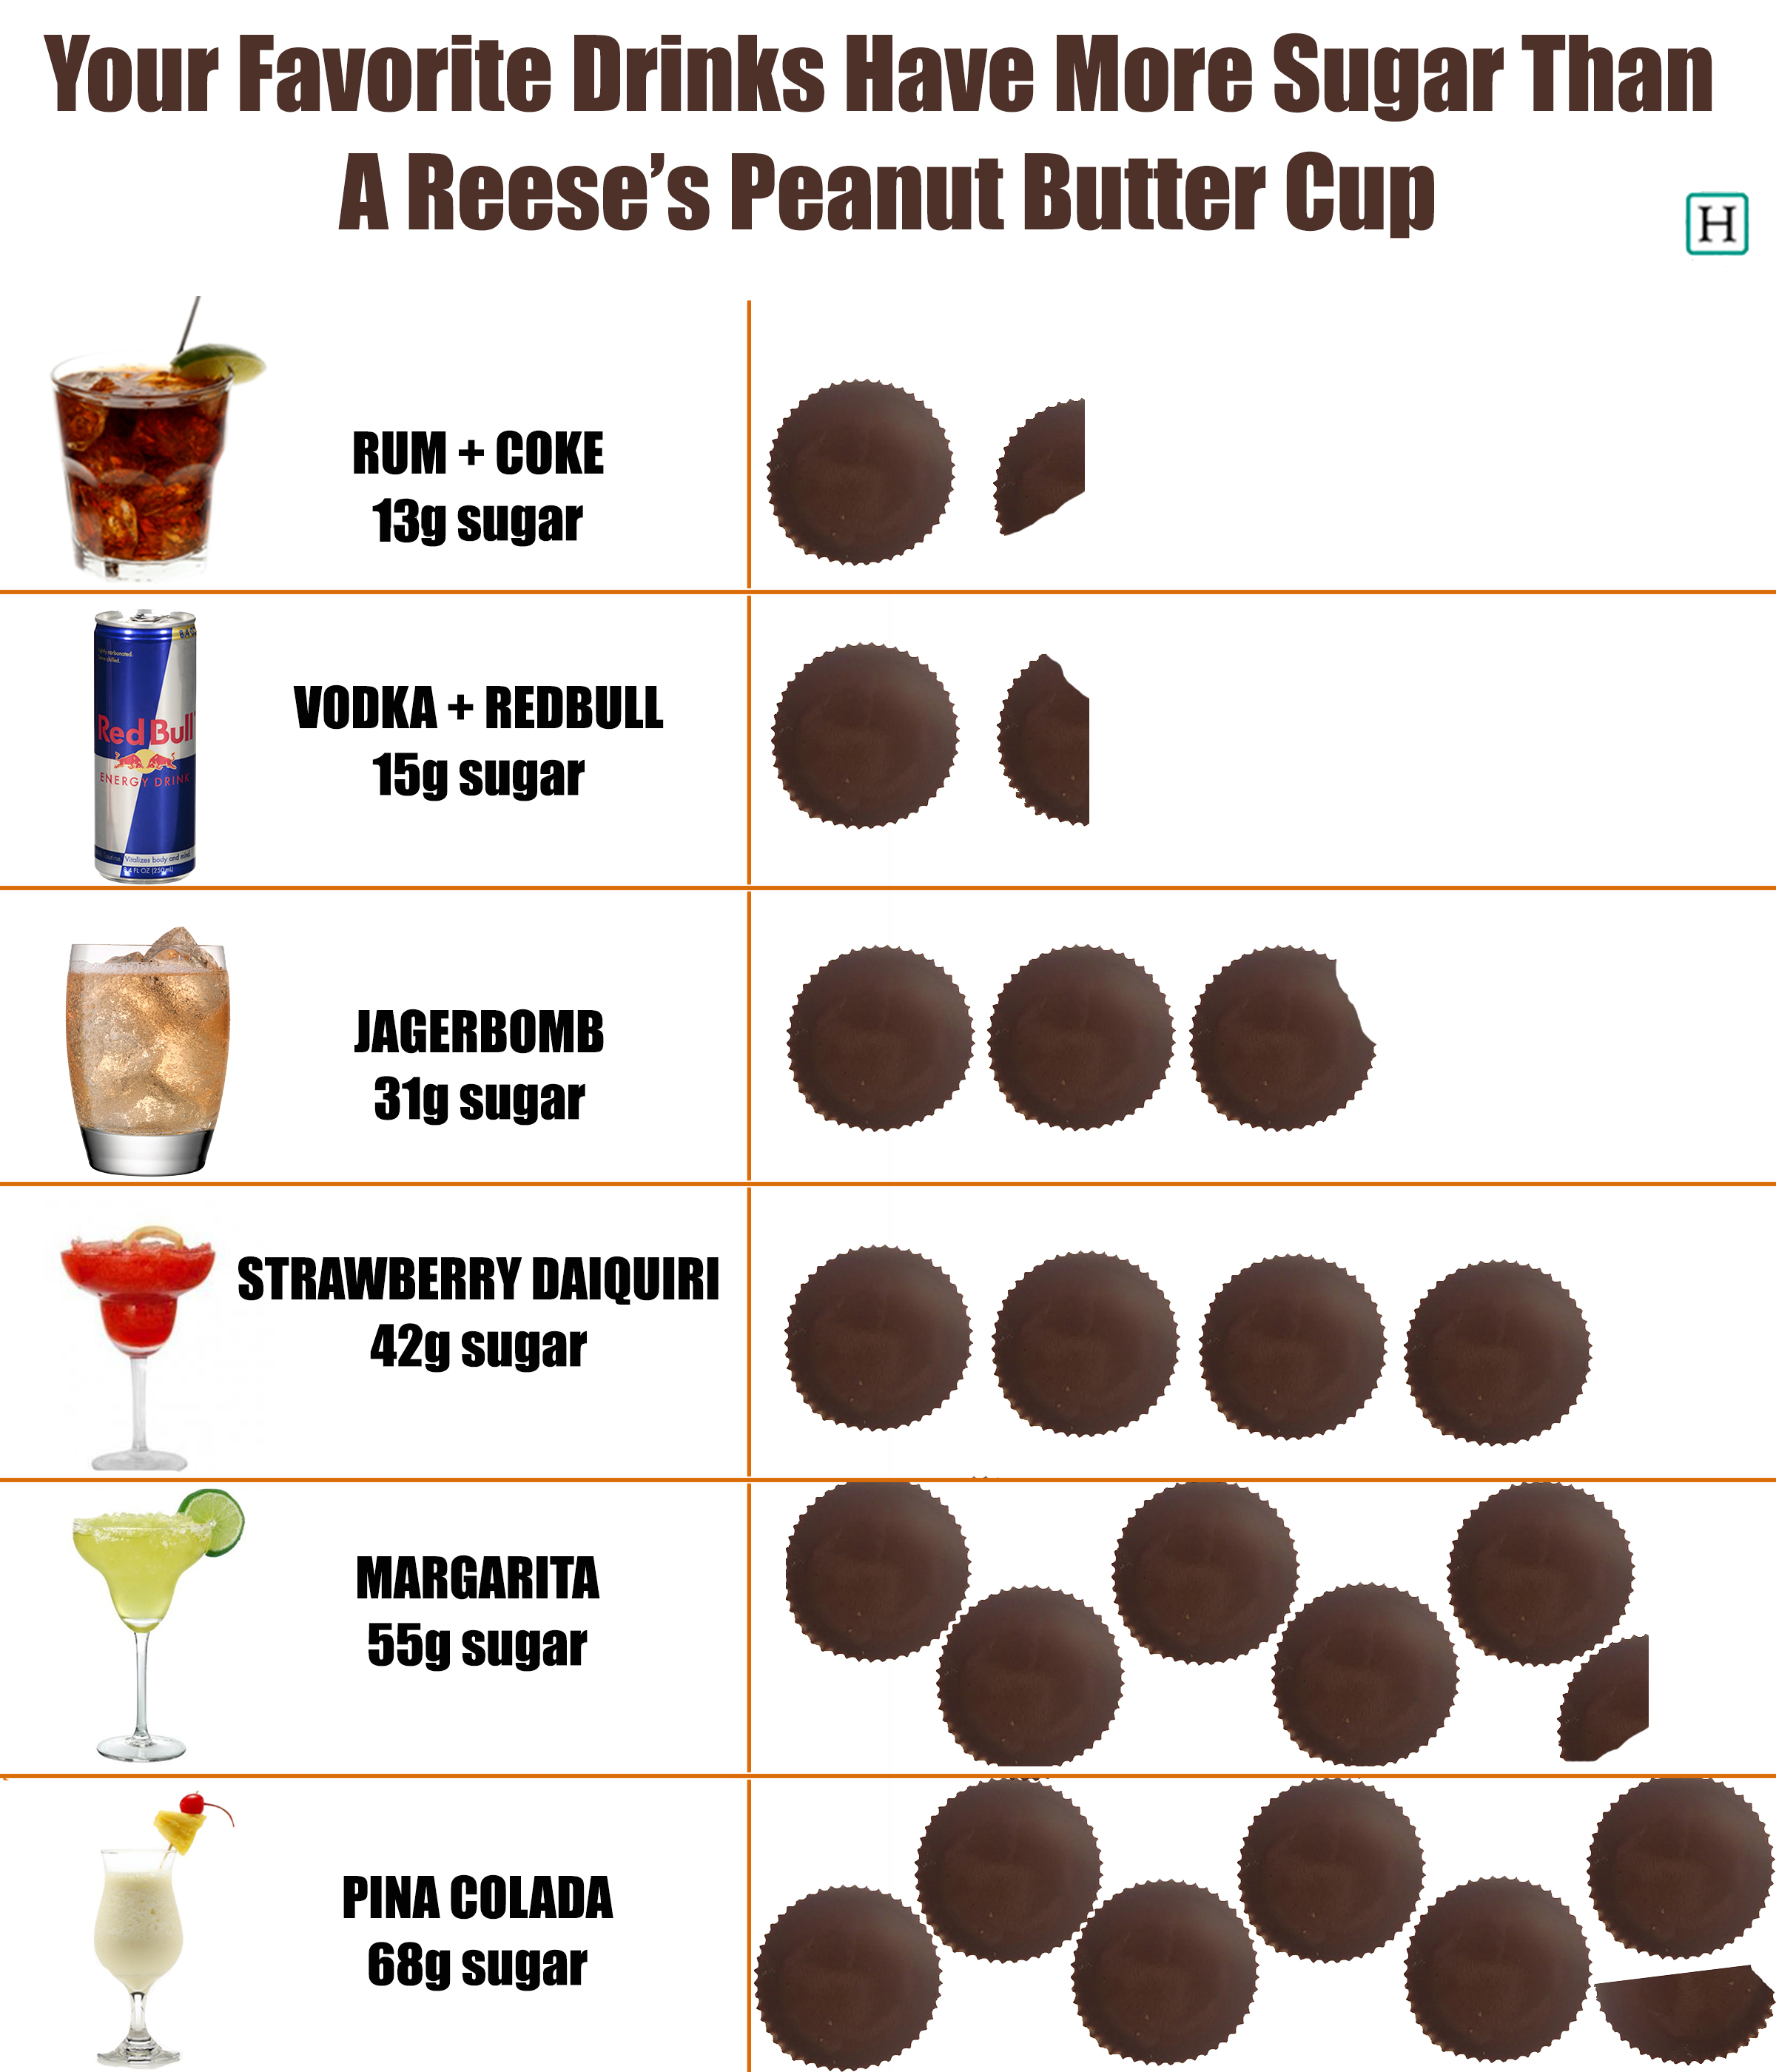 Calories in 1 cup peanut butter